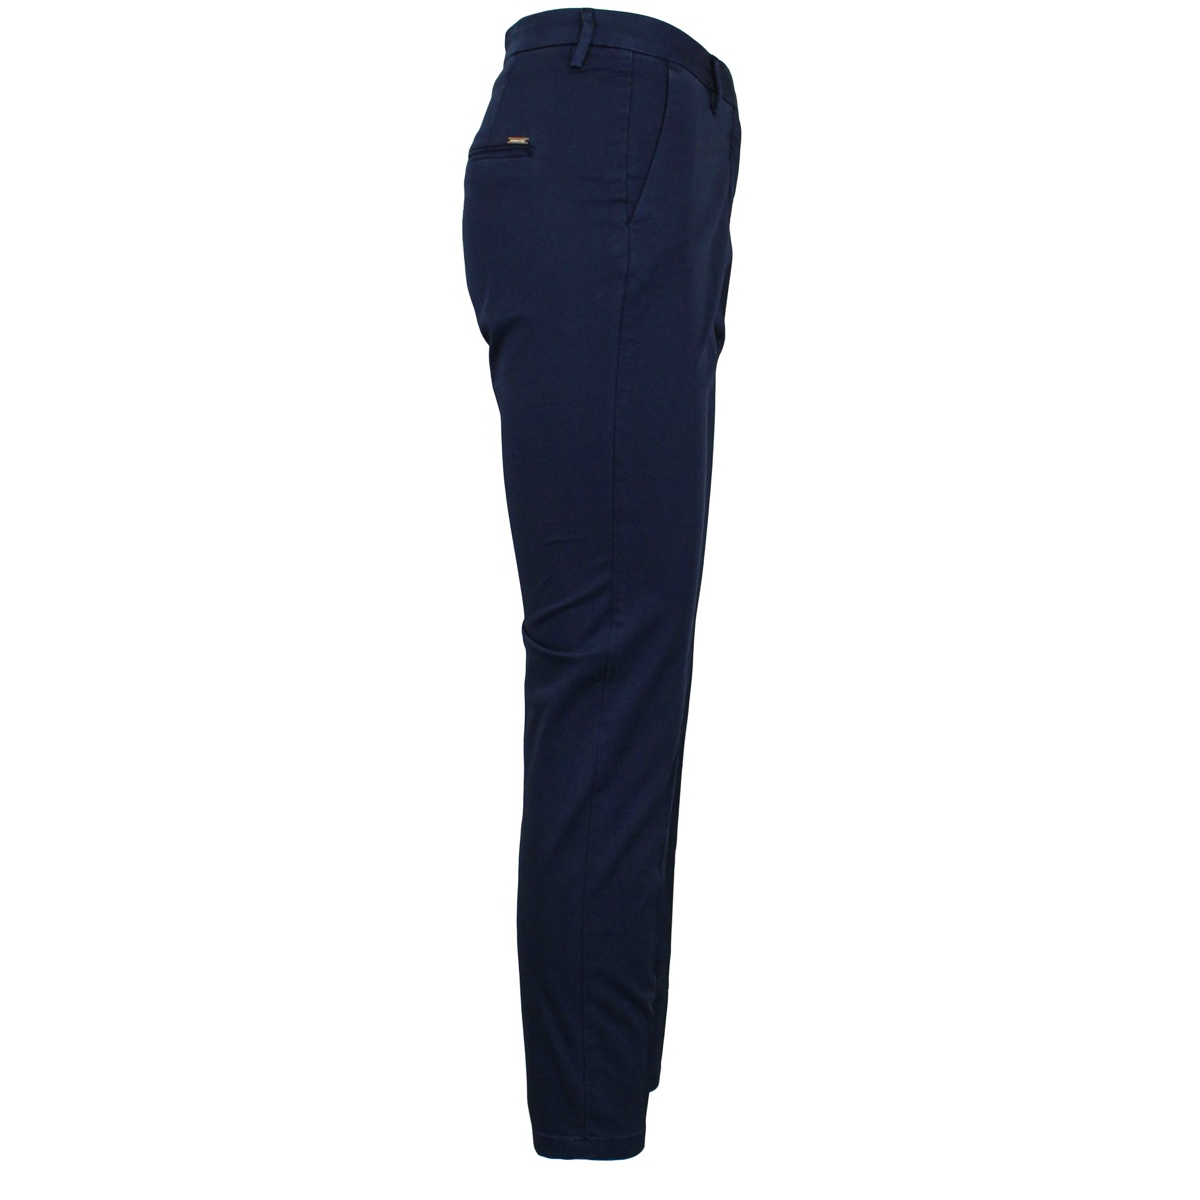 Cotton trousers with america pockets Blue MICHAEL COAL